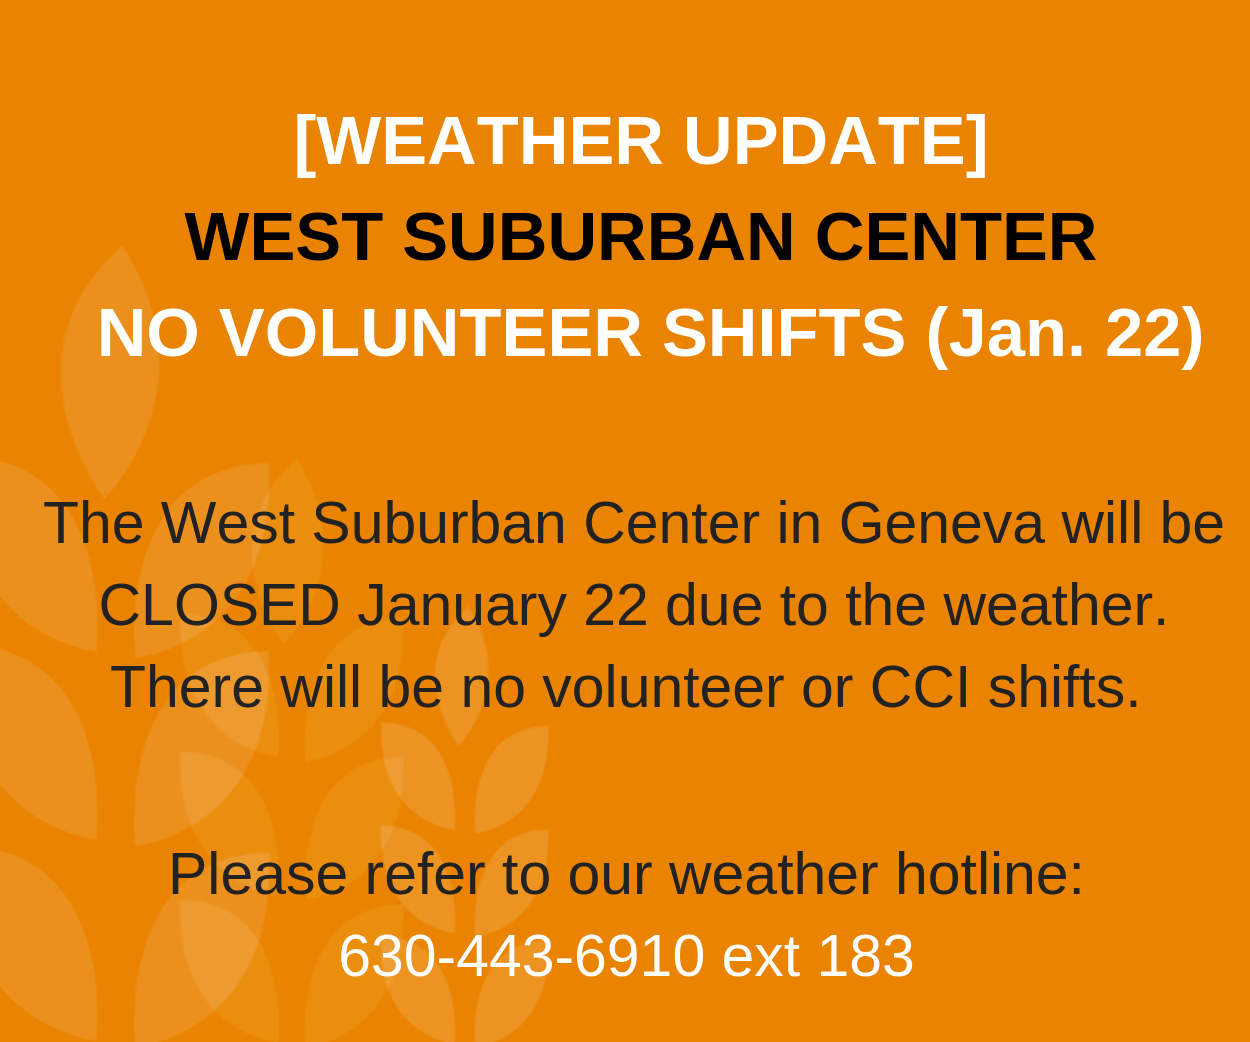 There will be no volunteer or CCI shifts on January 22 due to the weather. Call for updates 630-443-6910 ext. 183